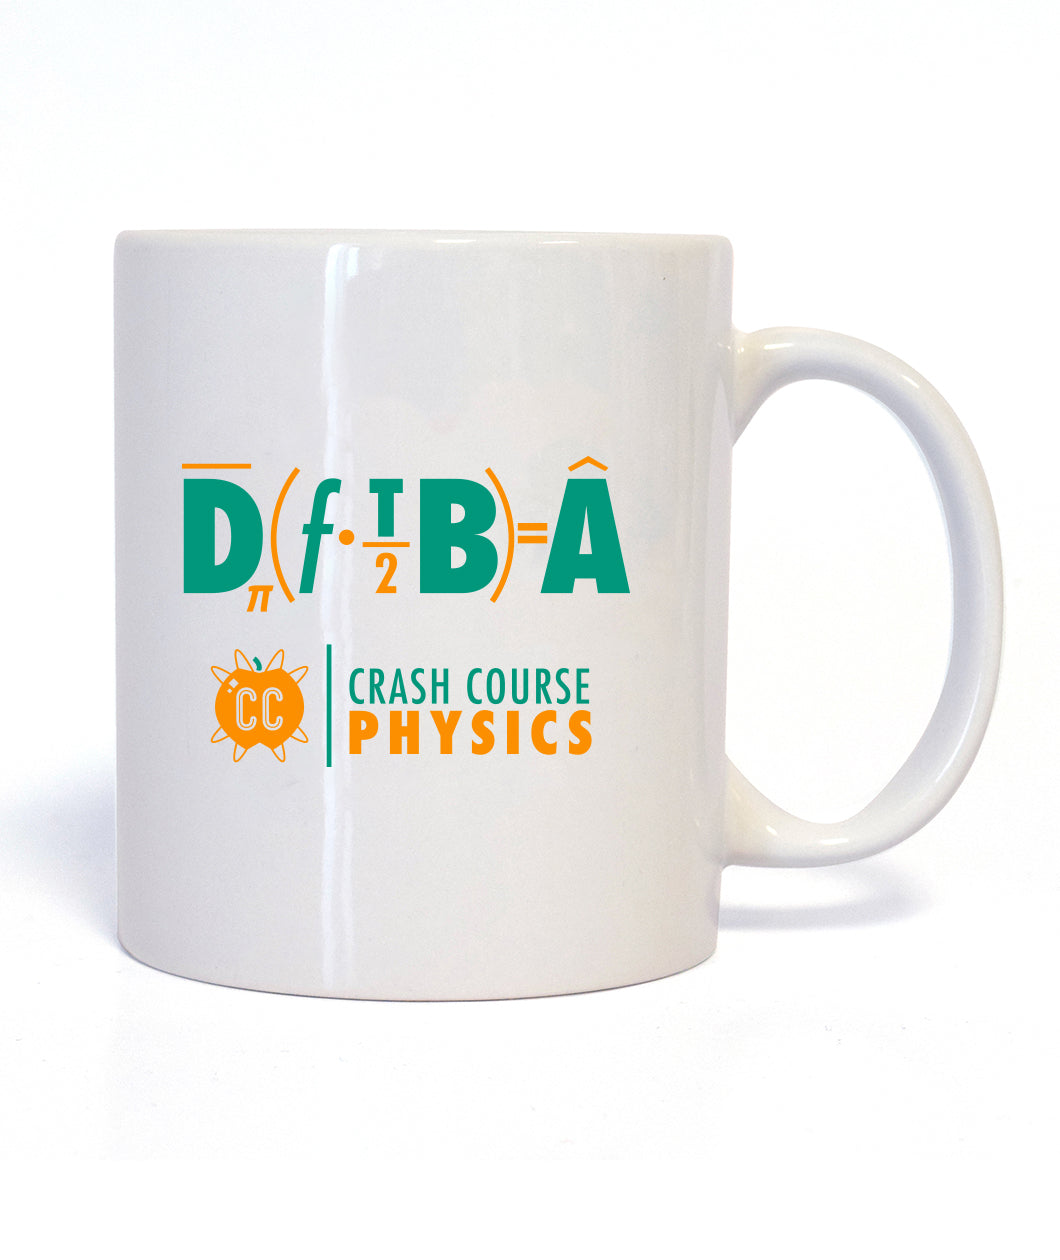 CrashCourse Physics Mug